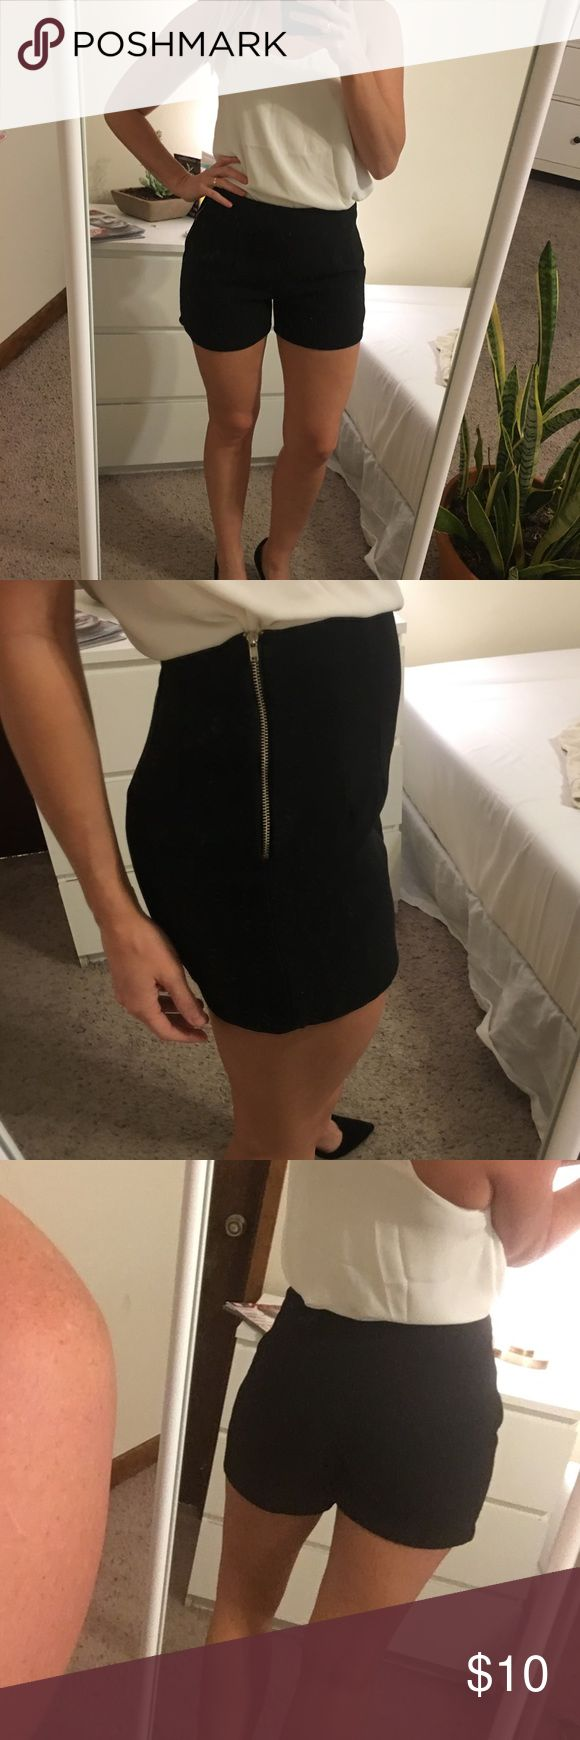 "Black high waisted stretch going out shorts lined Black stretch dressy shorts with lining and brass zipper. Caroline Hill. Size M/L. Fun with heels and a cute top for a night out. Polyester. I am 5'4"" 135 lbs, pear shaped, perfect fit!👌🏽 they have a little stretch, so would probably fit someone a bit smaller or larger, too. Shorts"